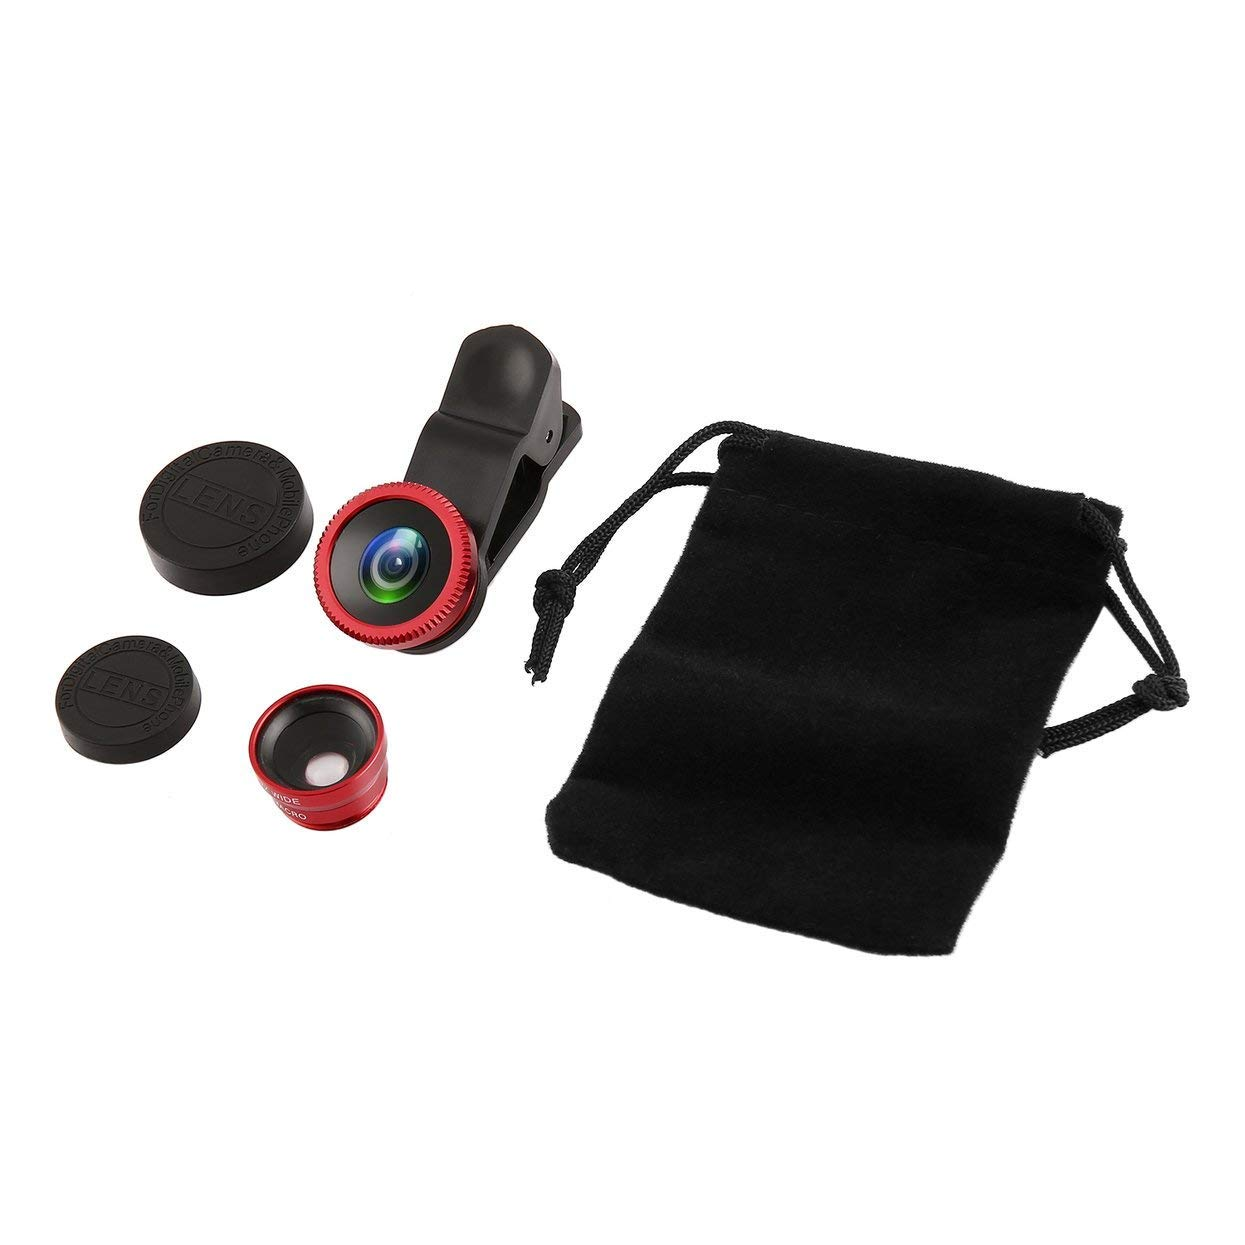 3 in 1 Wide Angle Macro Fisheye Lens Camera Mobile Phone Lens Portable Parts Universal for iPhone Android Phones